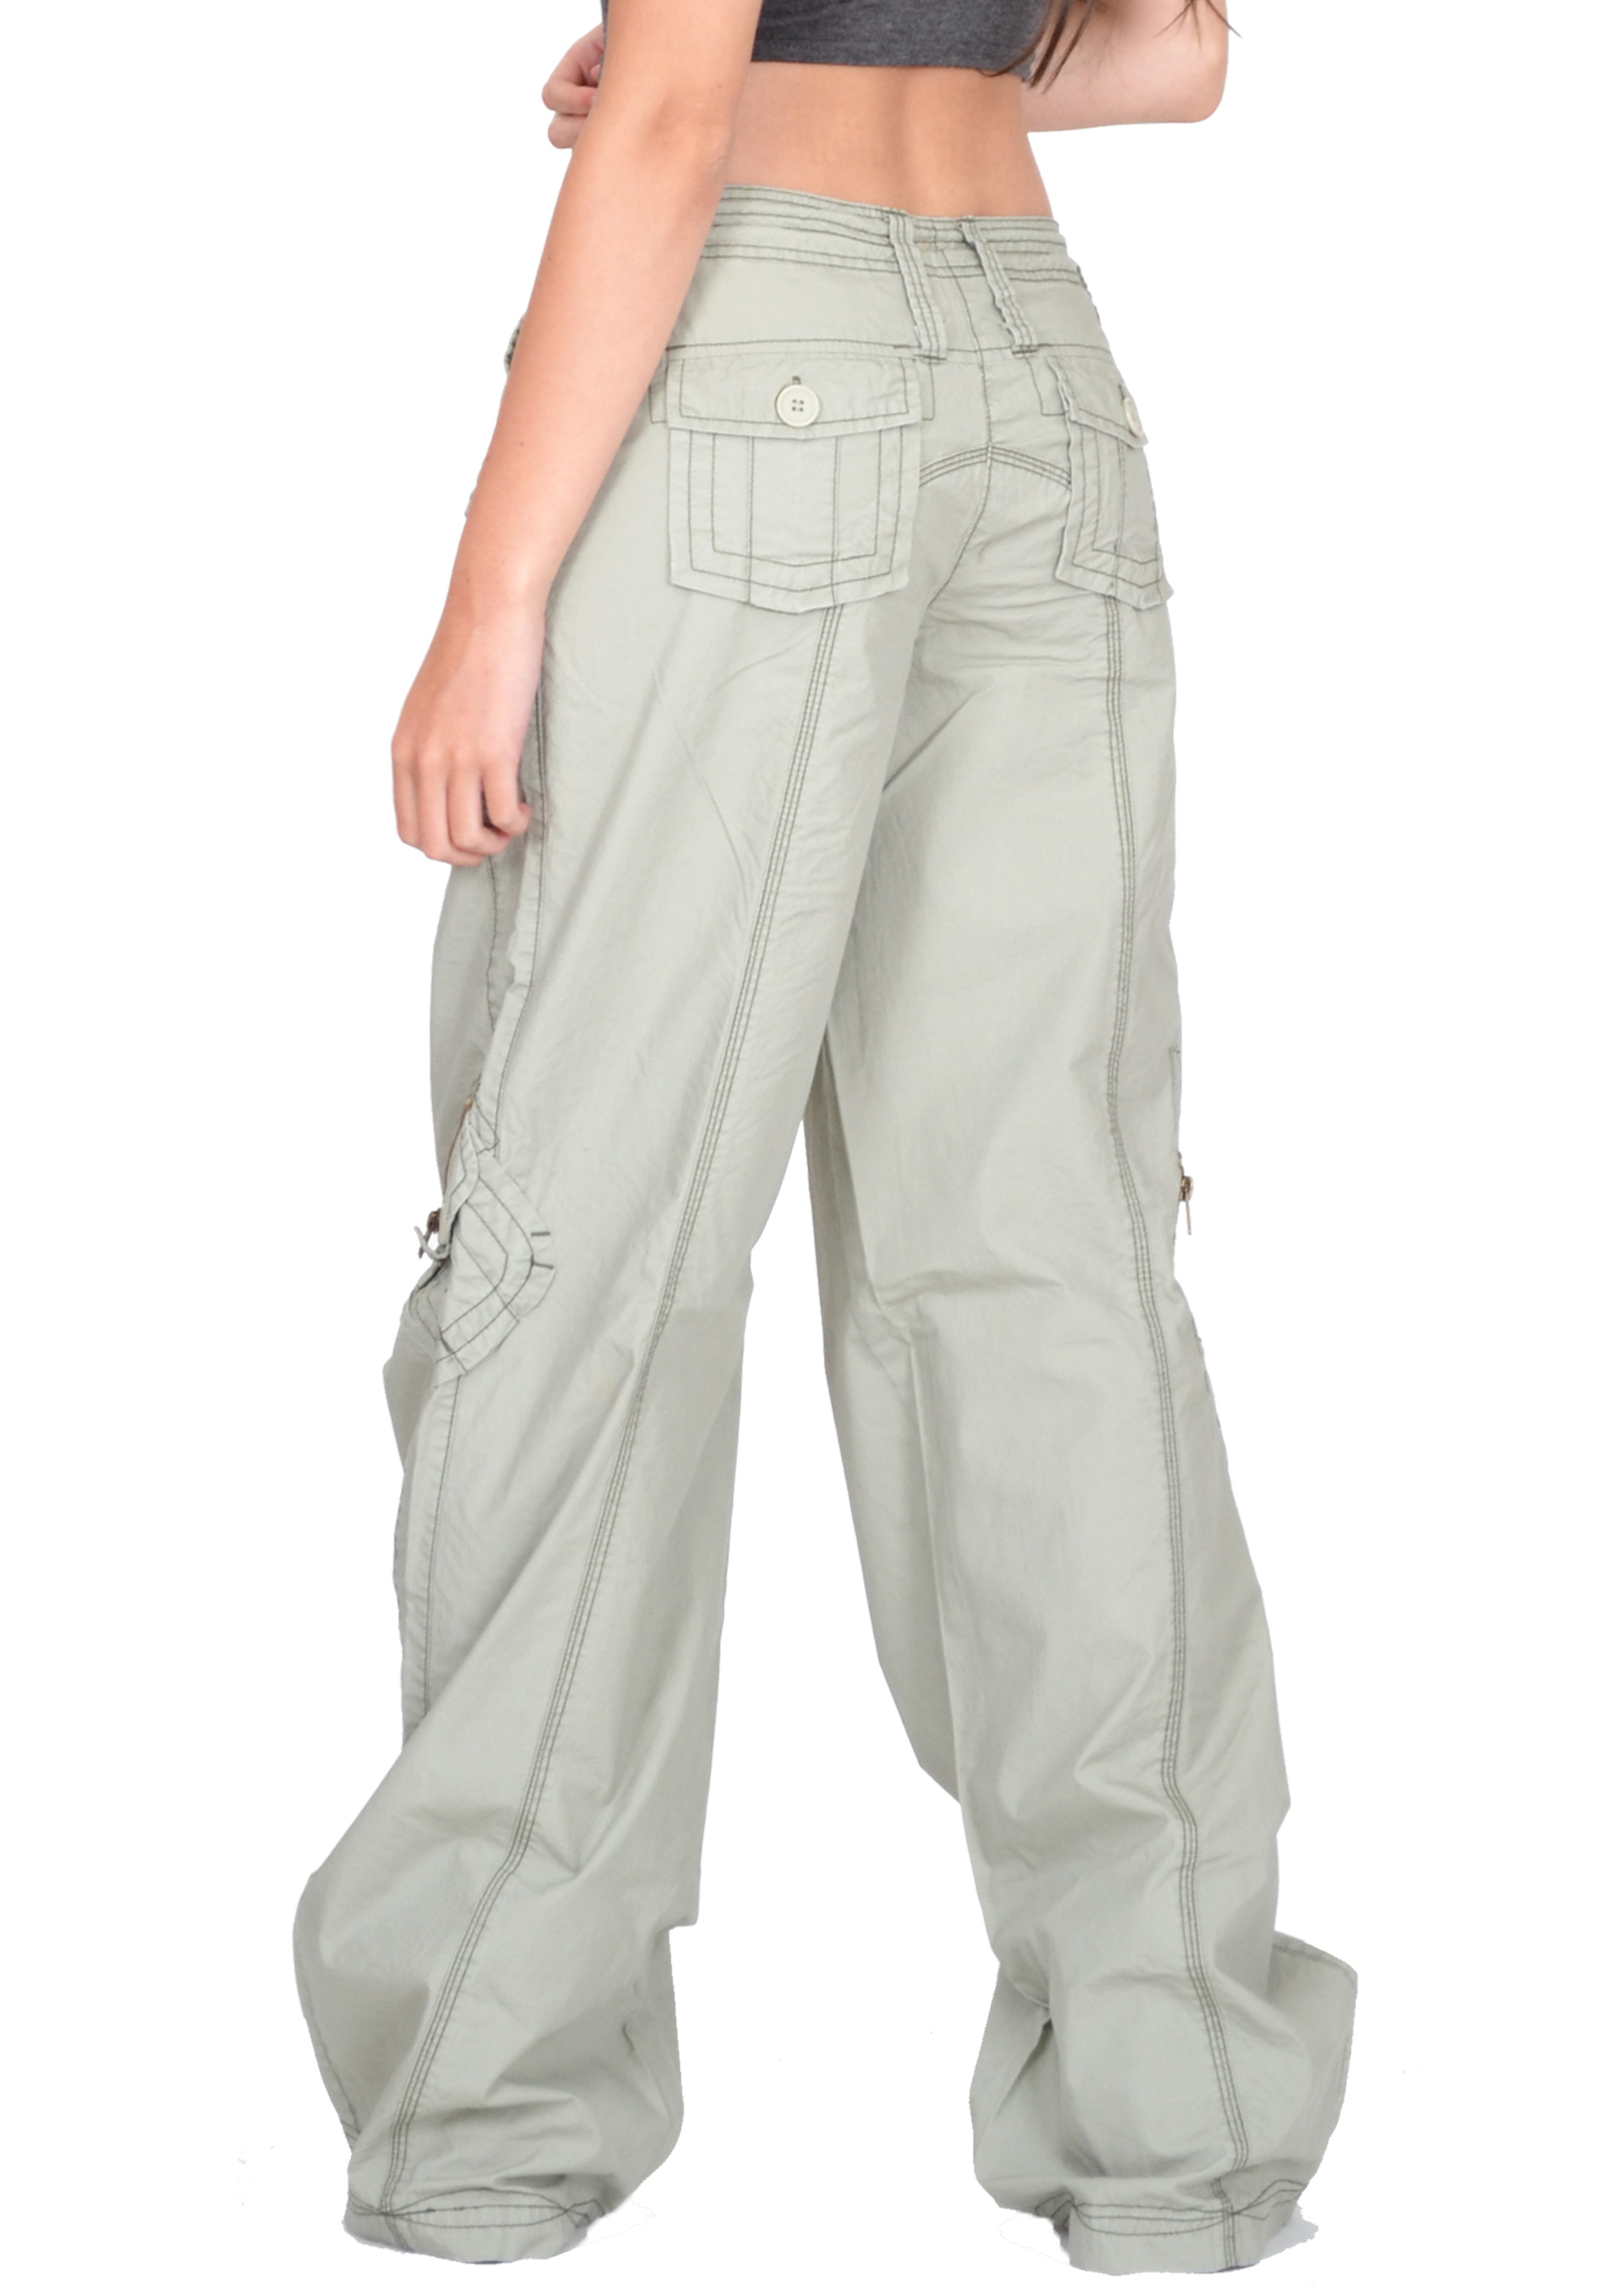 Original Women39s Designer Outdoor Hip Hop Hiphop Pants Cargo Dance Pants Baggy